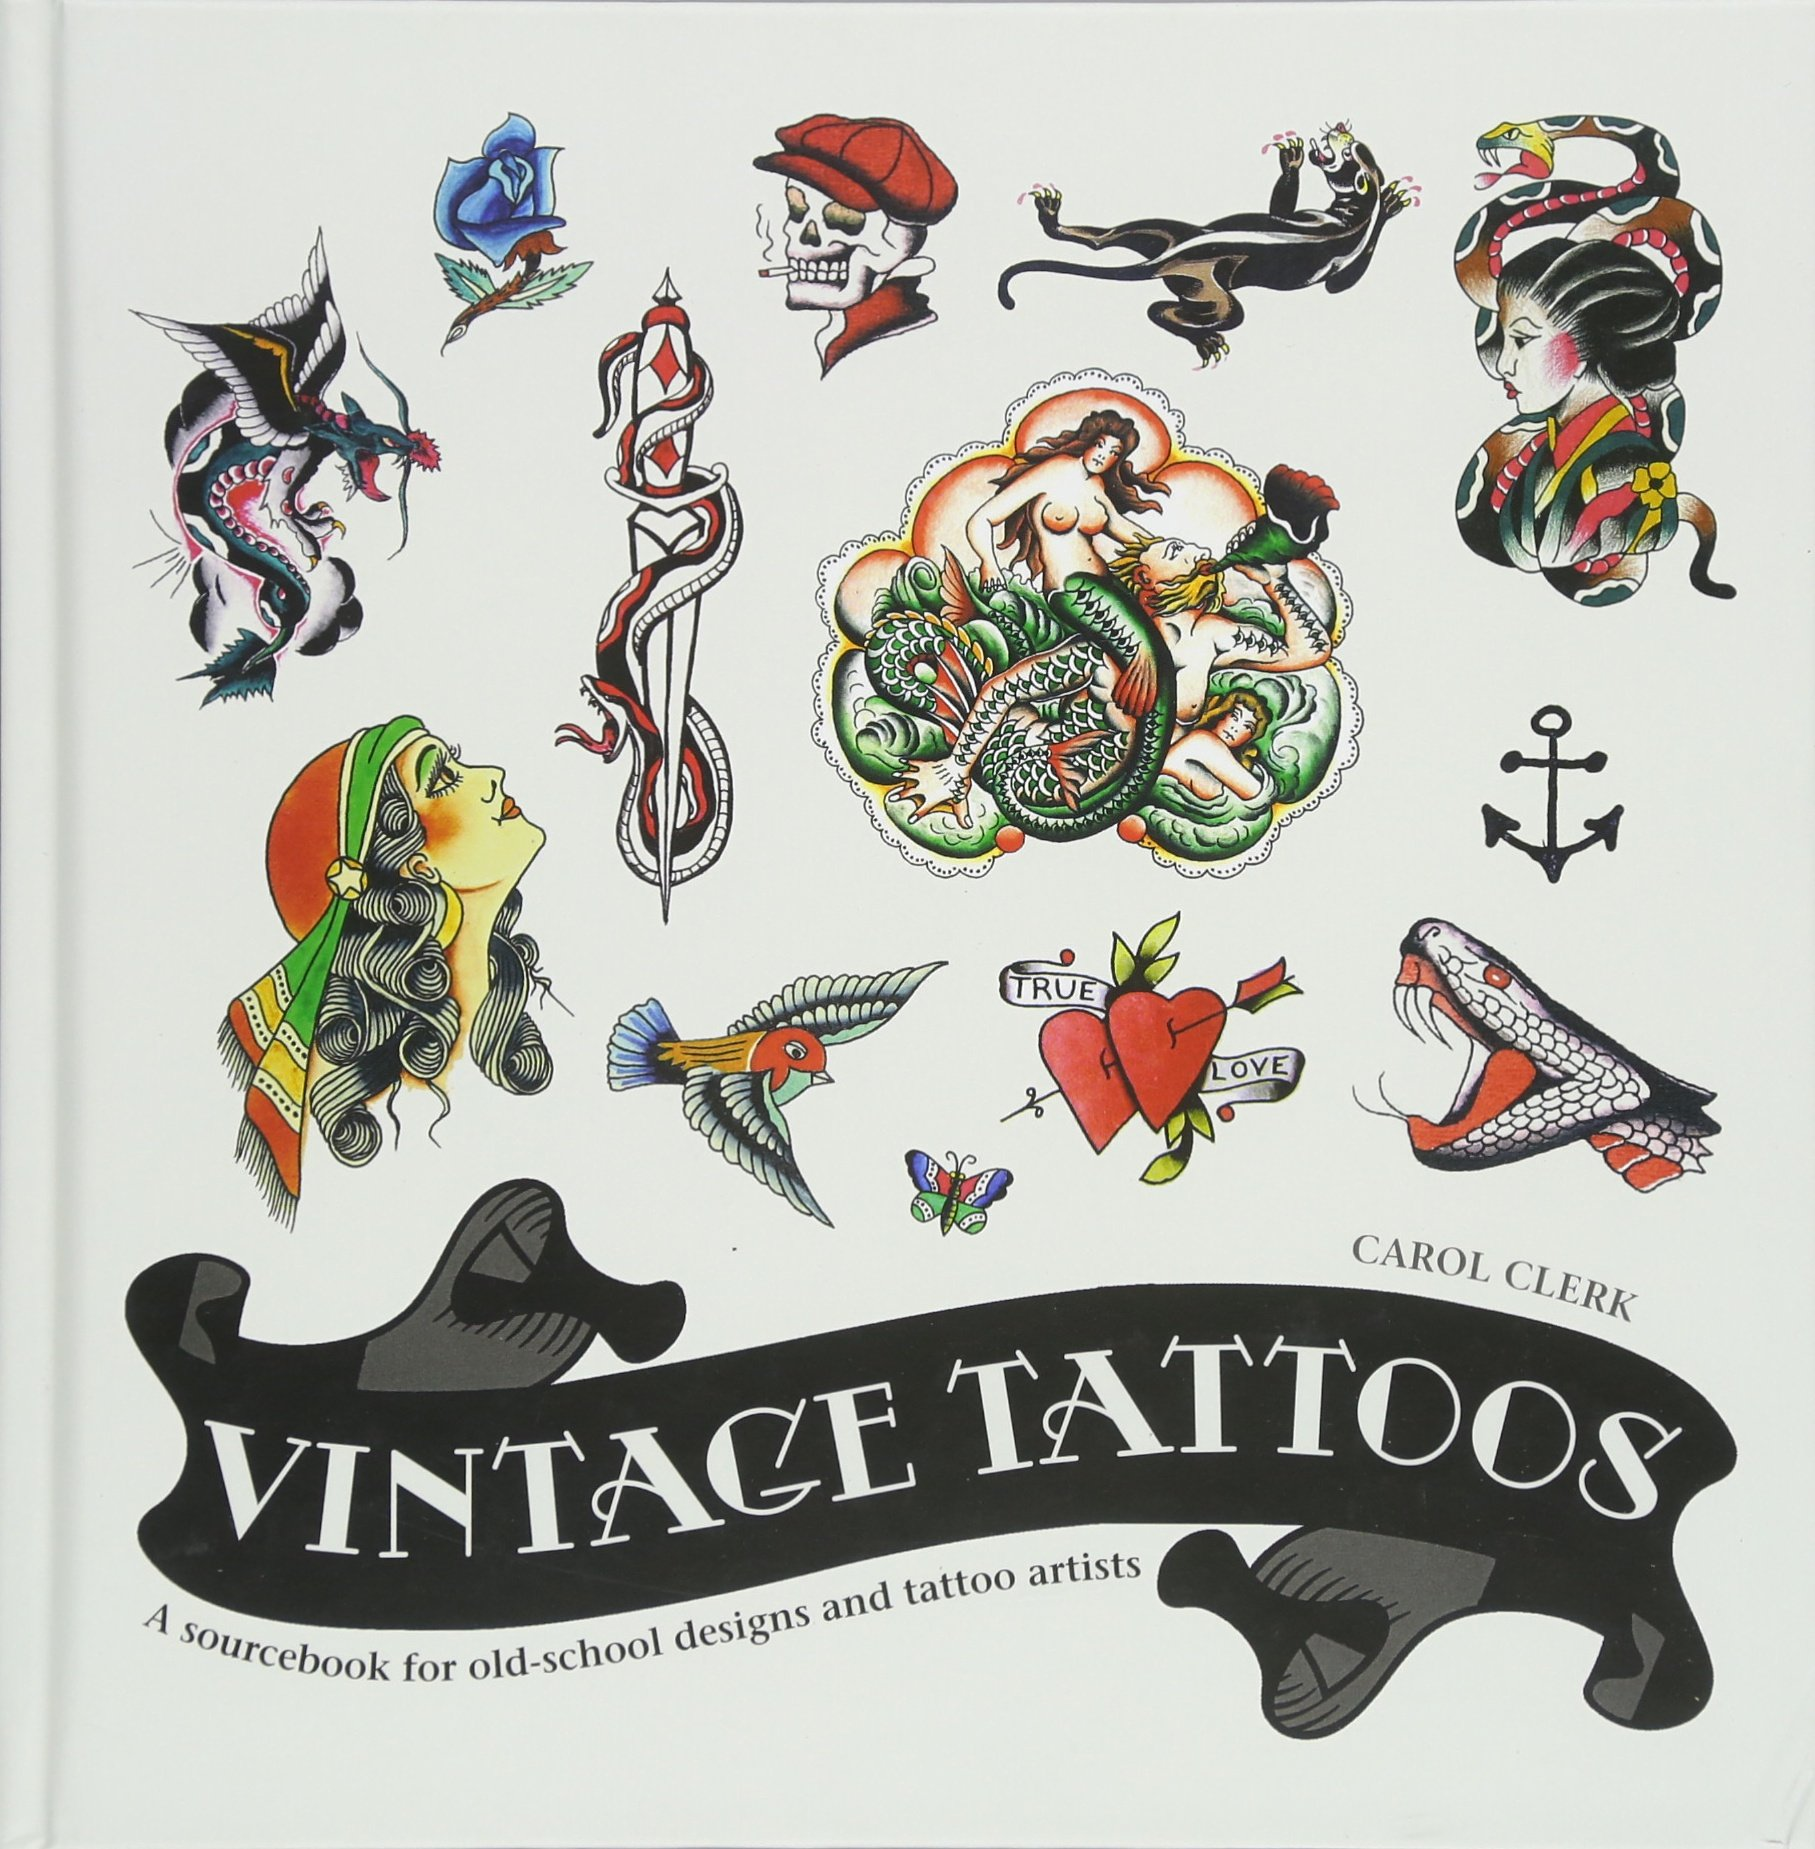 Vintage Tattoos: A Sourcebook for Old-School Designs and Tat: Amazon.es: Carol Clerk: Libros en idiomas extranjeros